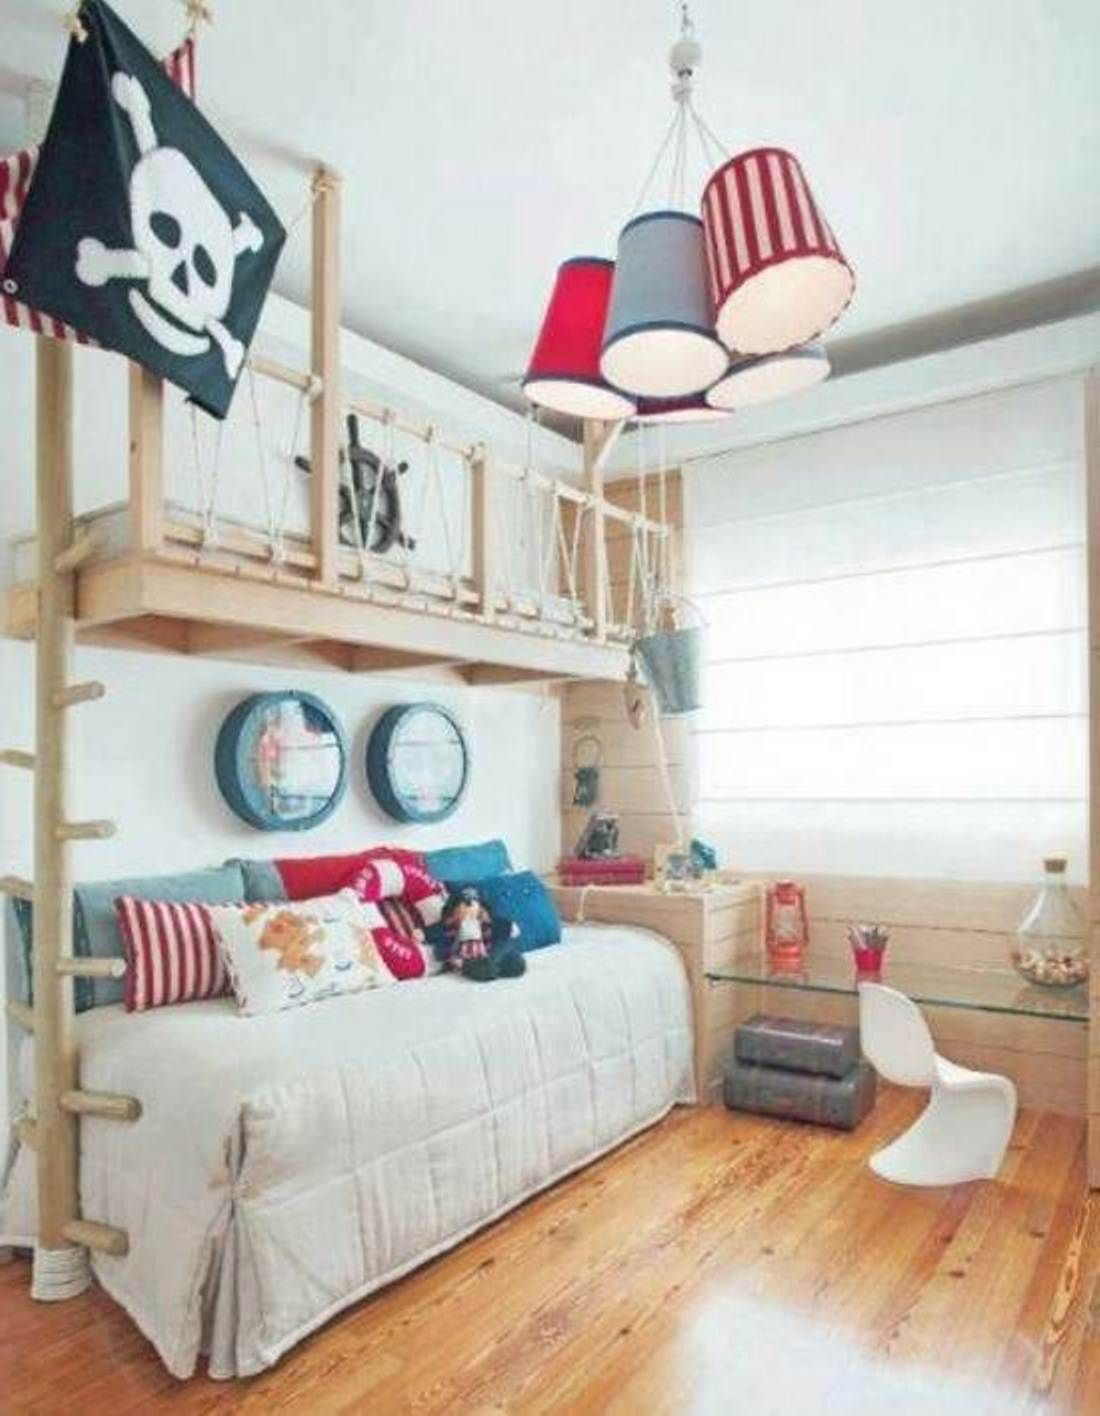 Awesome Pirate Loft For A Little Boy S Bedroom You Could Widen The And Put Bed Up There Alter Theme To Astronauts Buzz Lightyear Etc